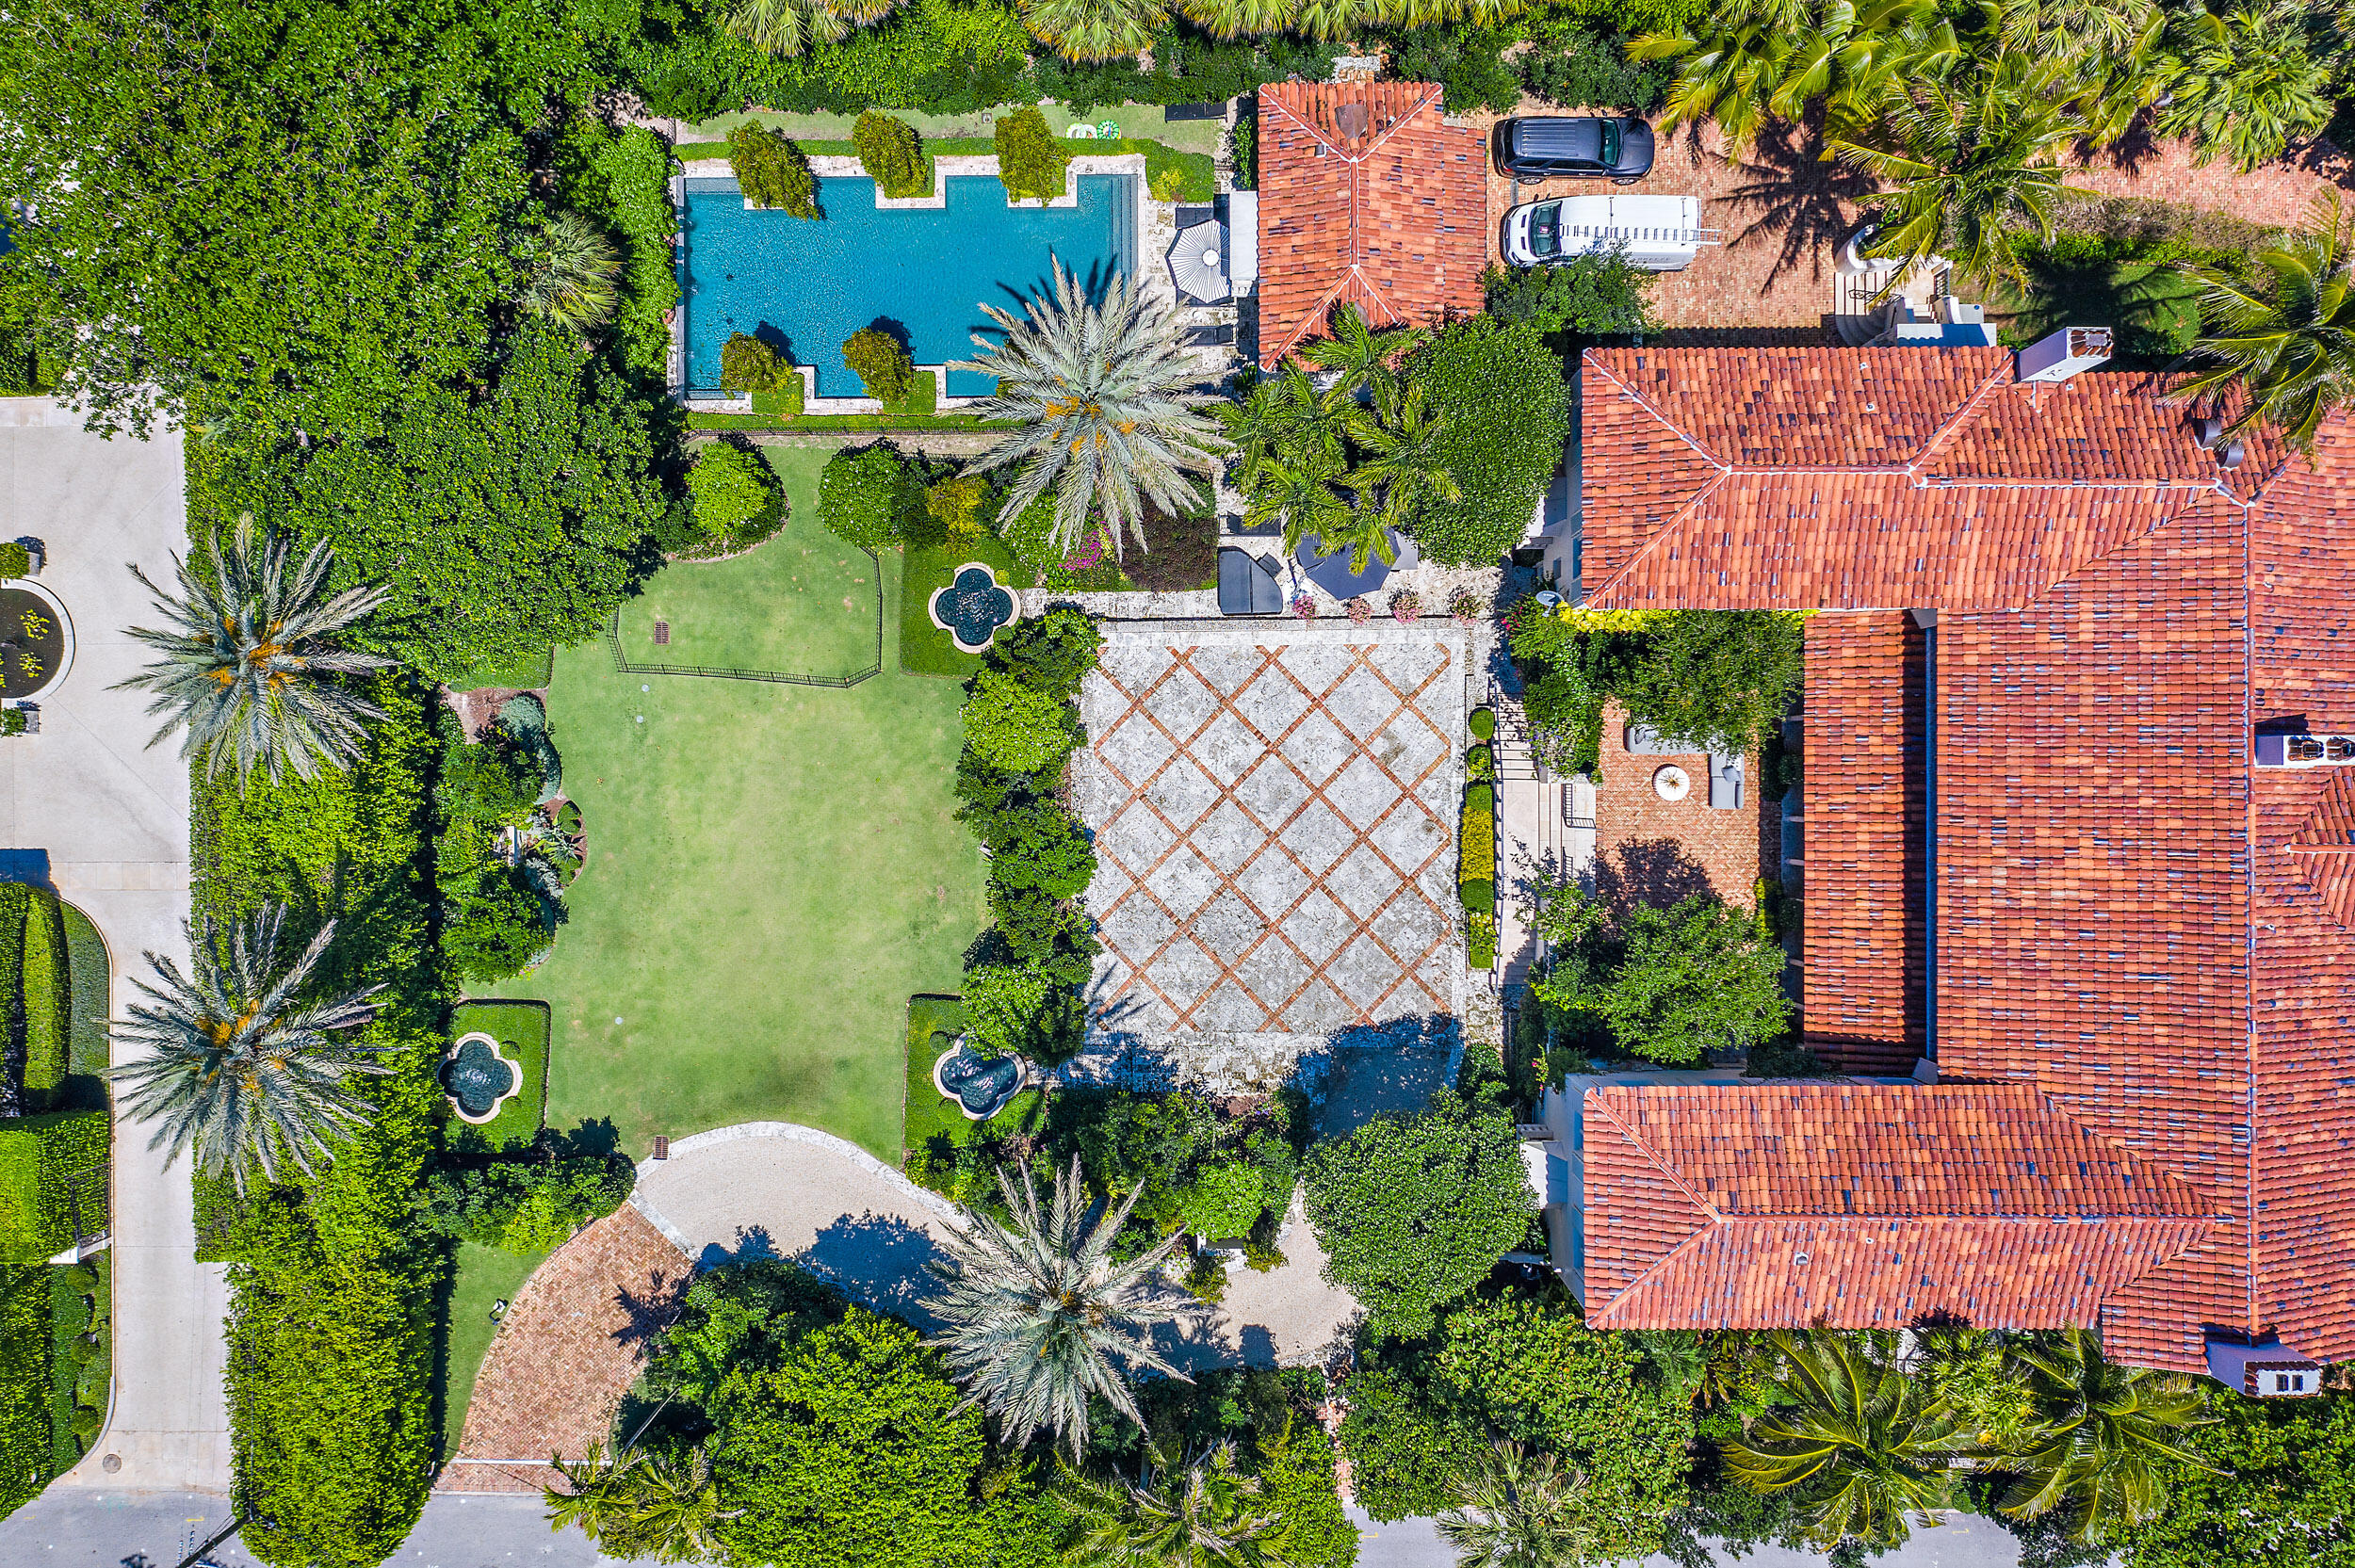 1928 Marion Sims Wyeth designed landmark home is located in the estate section on a 36,246 sf lot. The oversized landscape and gardens were designed by celebrity landscape architect Harry Nelson while the structure was stunningly renovated inside and out by Todd Michael Glaser. Only two houses from the ocean, this Mediterranean estate is comprised of 7 bedrooms, 9 baths and 2 half baths and totals 12,641 sf. The impressive great room boasts a ceiling height over 25' with beautifully stenciled Pecky Cypress adding to the allure of this authentic Wyeth estate. Interior features include 3 fireplaces, 2 beautifully enclosed galleries, an elevator, sauna, wine cellar, massage and fitness room, separate guest house, poolside cabana, full house generator, cooling tower and deeded beach access. DISCLAIMER: Information published or otherwise provided by the listing company and its representatives including but not limited to prices, measurements, square footages, lot sizes, calculations and statistics are deemed reliable but are not guaranteed and are subject to errors, omissions or changes without notice. All such information should be independently verified by any prospective purchaser or seller. Parties should perform their own due diligence to verify such information prior to a sale or listing. Listing company expressly disclaims any warranty or representation regarding such information. Prices published are either list price, sold price, and/or last asking price. The listing company participates in the Multiple Listing Service and IDX. The properties published as listed and sold are not necessarily exclusive to listing company and may be listed or have sold with other members of the Multiple Listing Service. Transactions where listing company represented both buyers and sellers are calculated as two sales. The listing company's marketplace is all of the following: Vero Beach, Town of Orchid, Indian River Shores, Town of Palm Beach, West Palm Beach, Manalapan Beach, Point Manalapan, Hypoluxo Island, Ocean Ridge, Gulf Stream, Delray Beach, Highland Beach, Boca Raton, East Deerfield Beach, Hillsboro Beach, Hillsboro Shores, East Pompano Beach, Lighthouse Point, Sea Ranch Lakes and Fort Lauderdale. Cooperating brokers are advised that in the event of a Buyer default, no commission will be paid to a cooperating Broker on the Deposits retained by the Seller. No commissions are paid to any cooperating broker until title passes or upon actual commencement of a lease. Some affiliations may not be applicable to certain geographic areas. If your property is currently listed with another broker, please disregard any solicitation for services. Copyright 2021 by the listing company. All Rights Reserved.